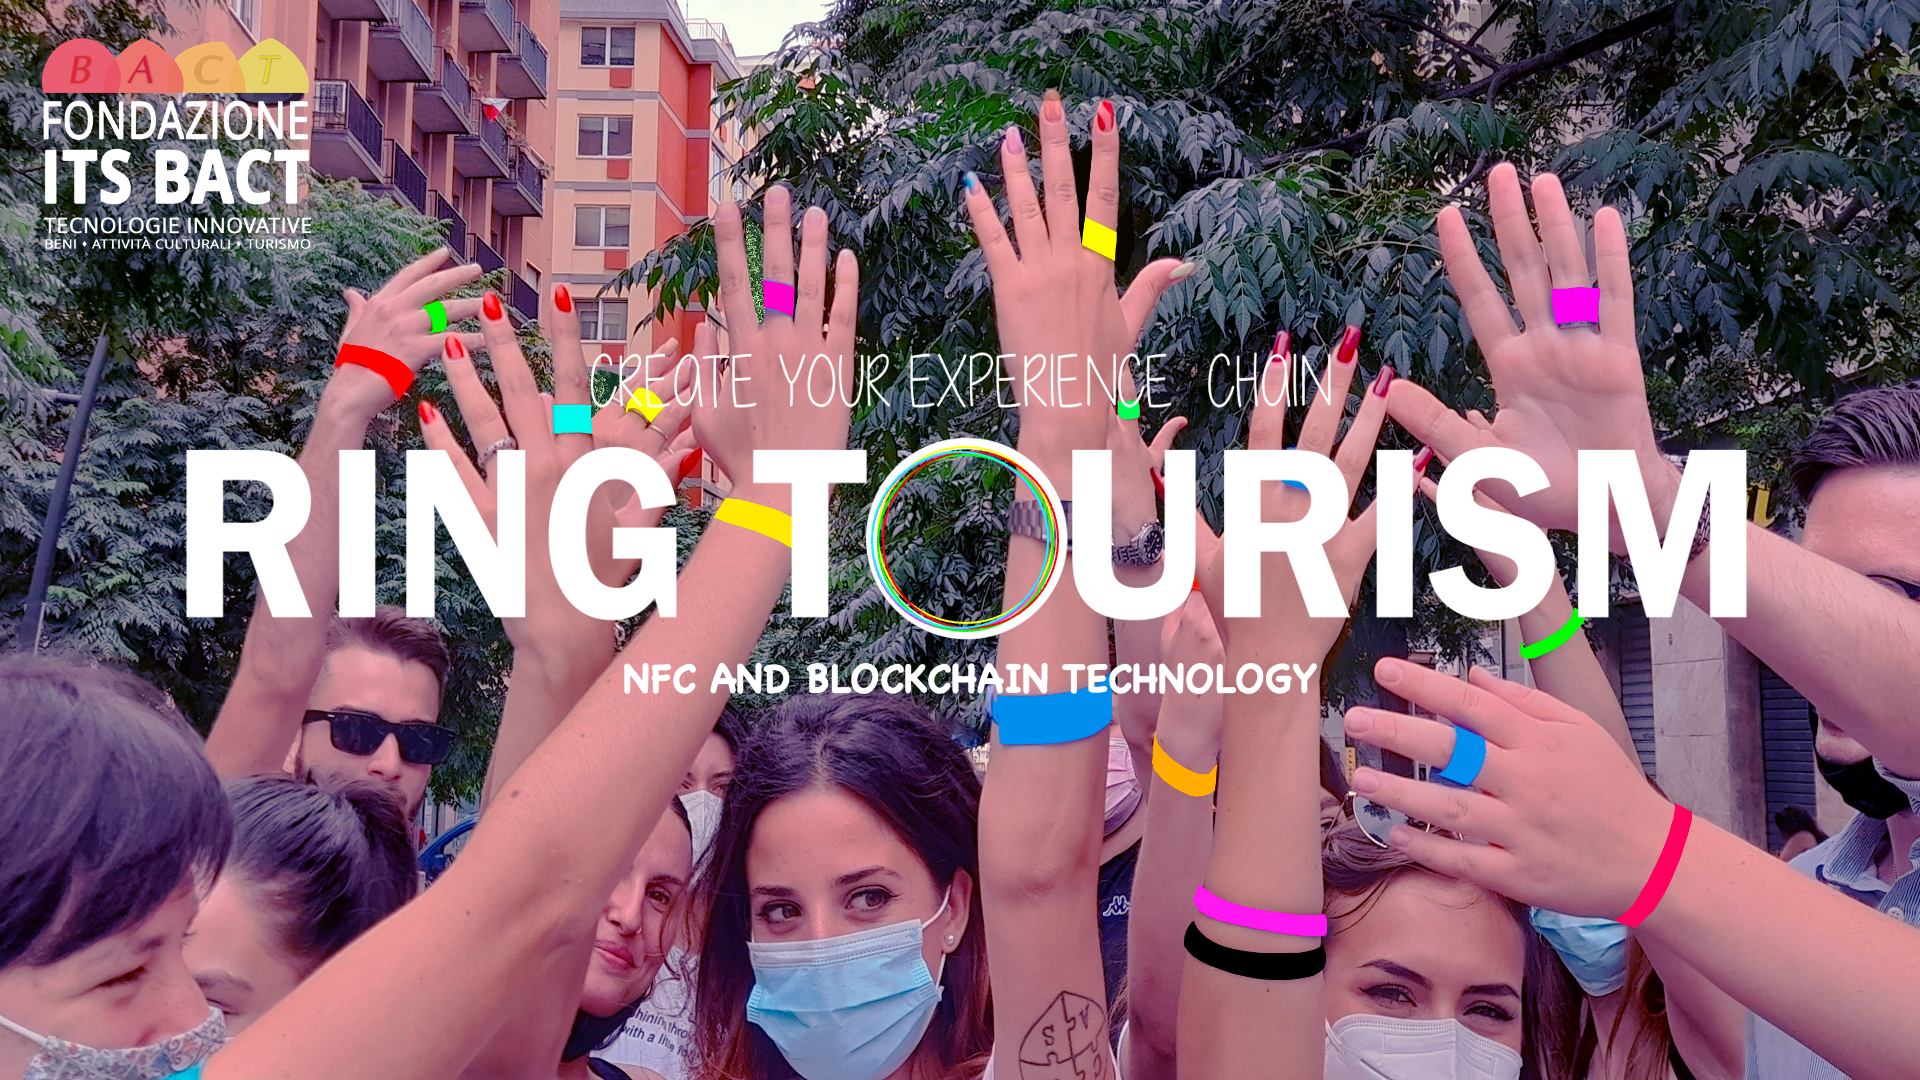 RING TOURISM - NFC and Blockchain technology